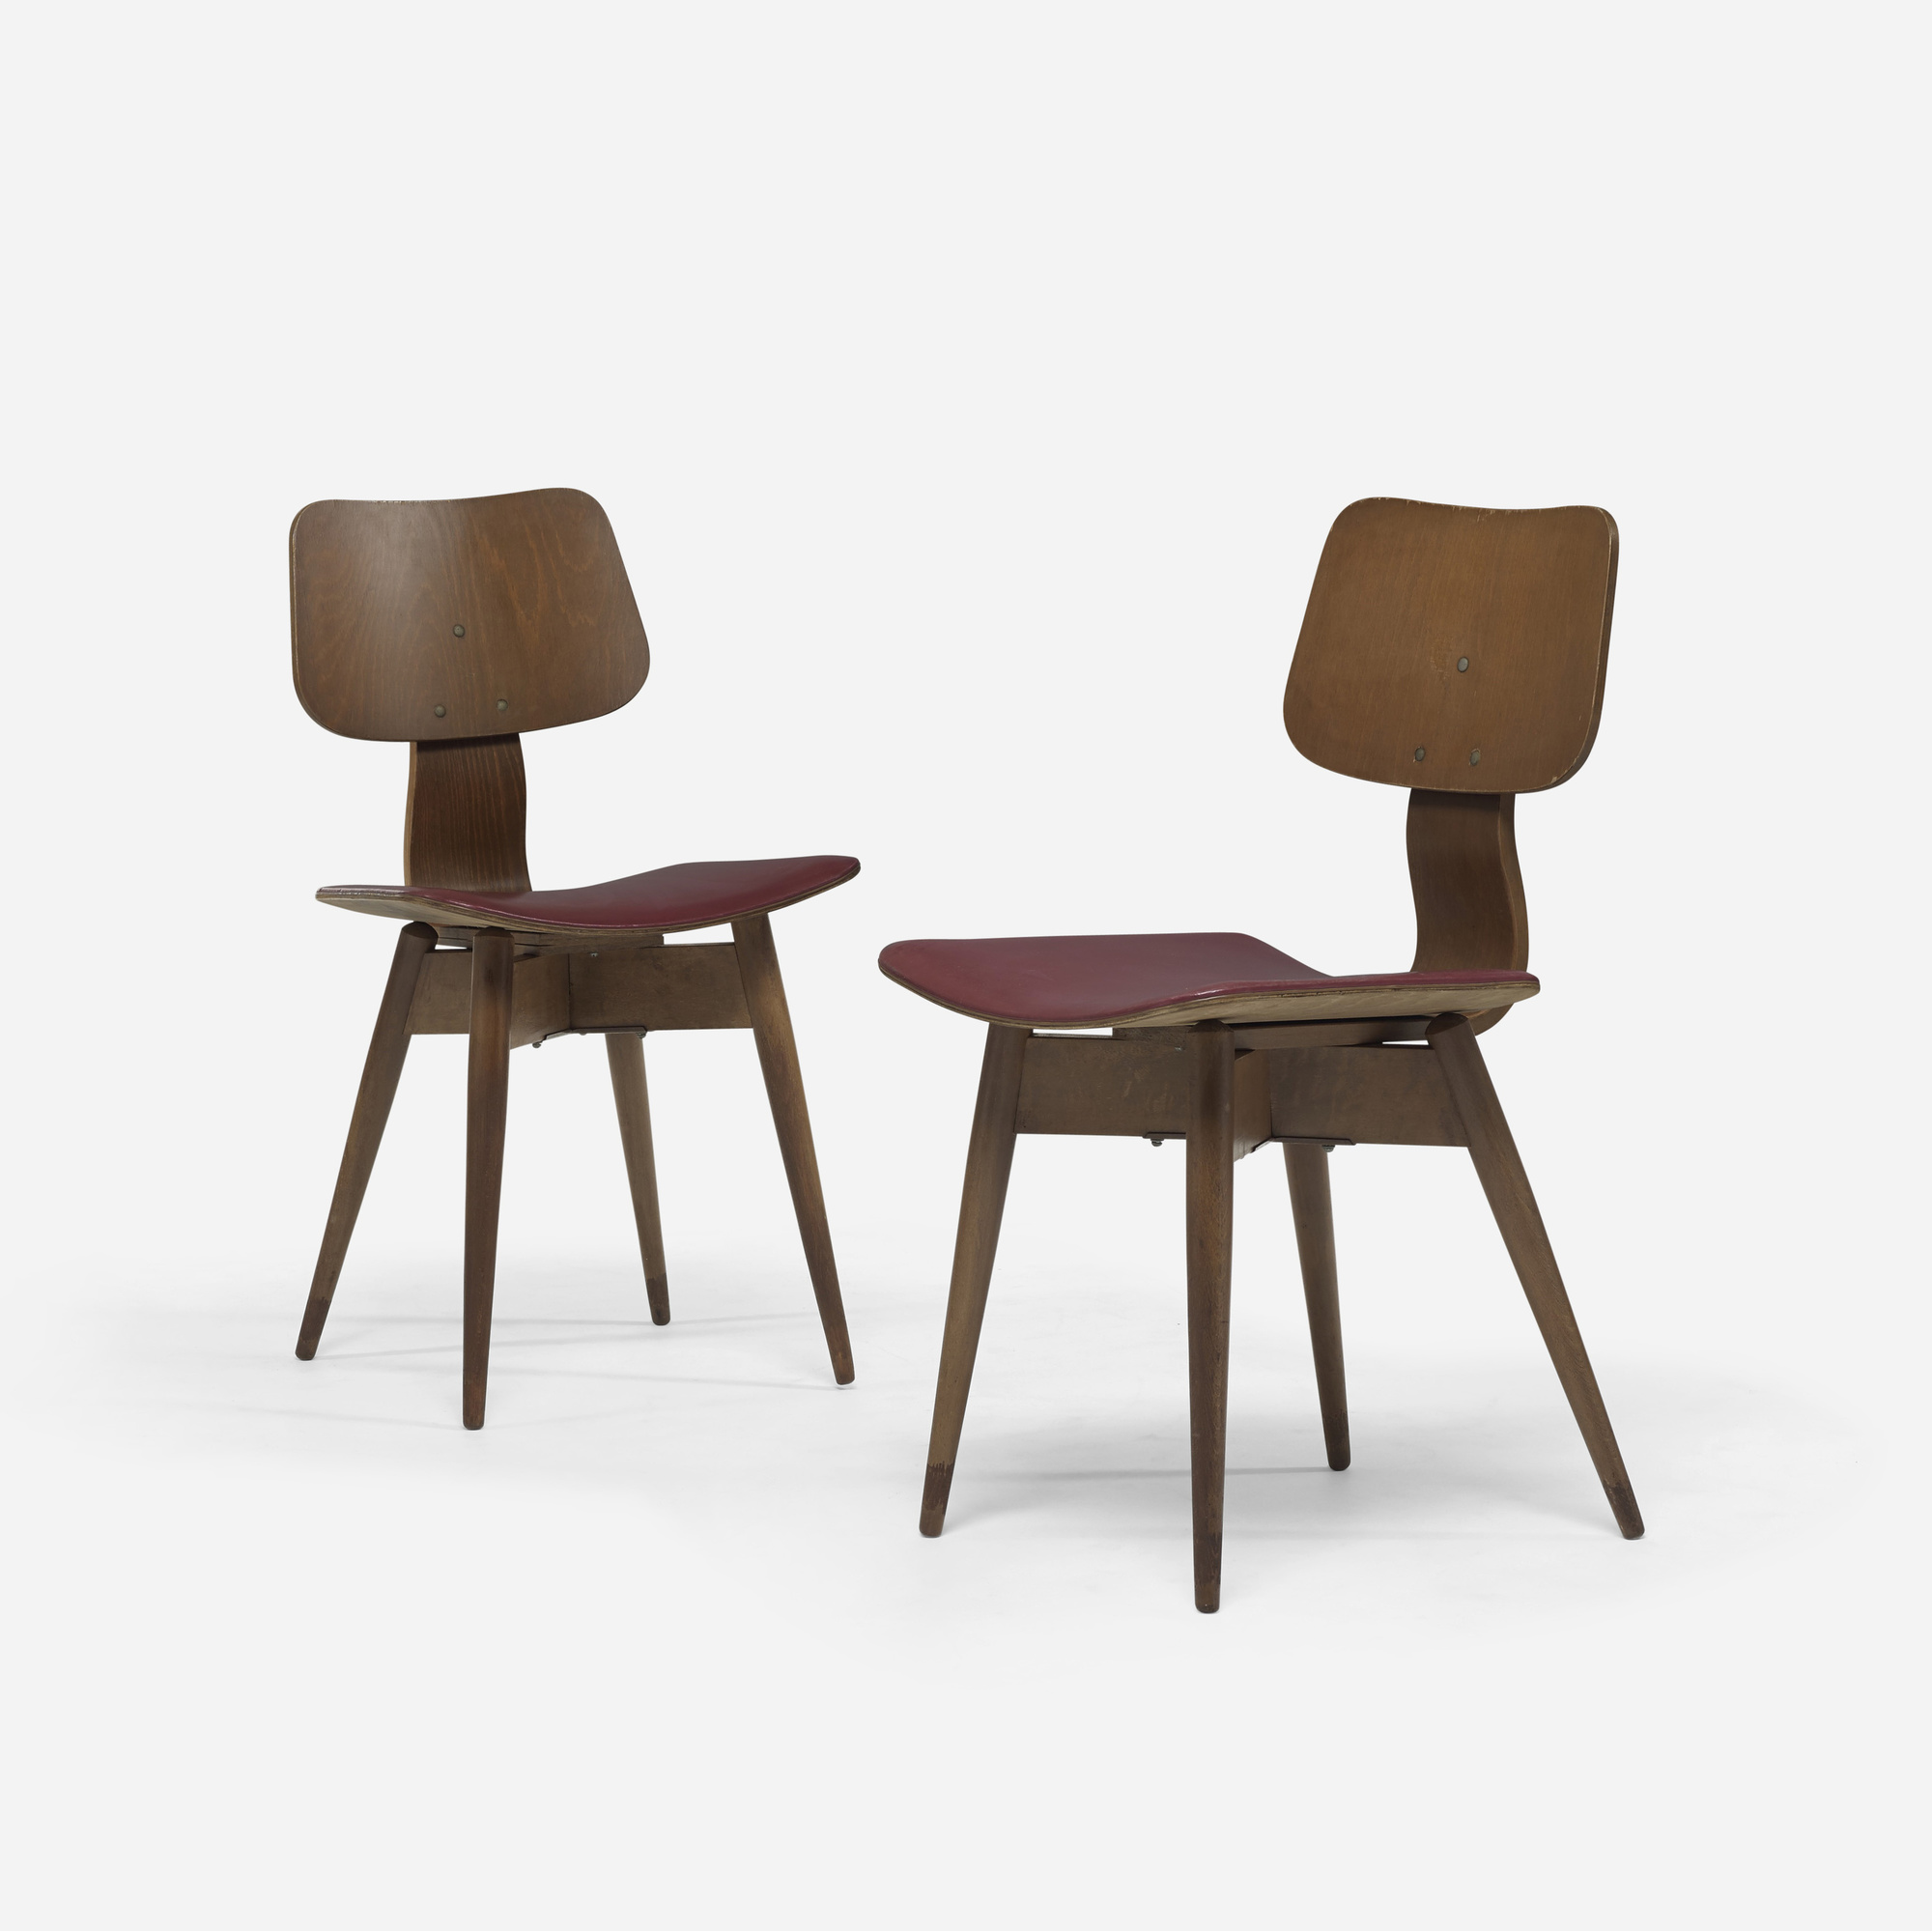 382: Tokukichi Kato / chairs, pair (1 of 3)